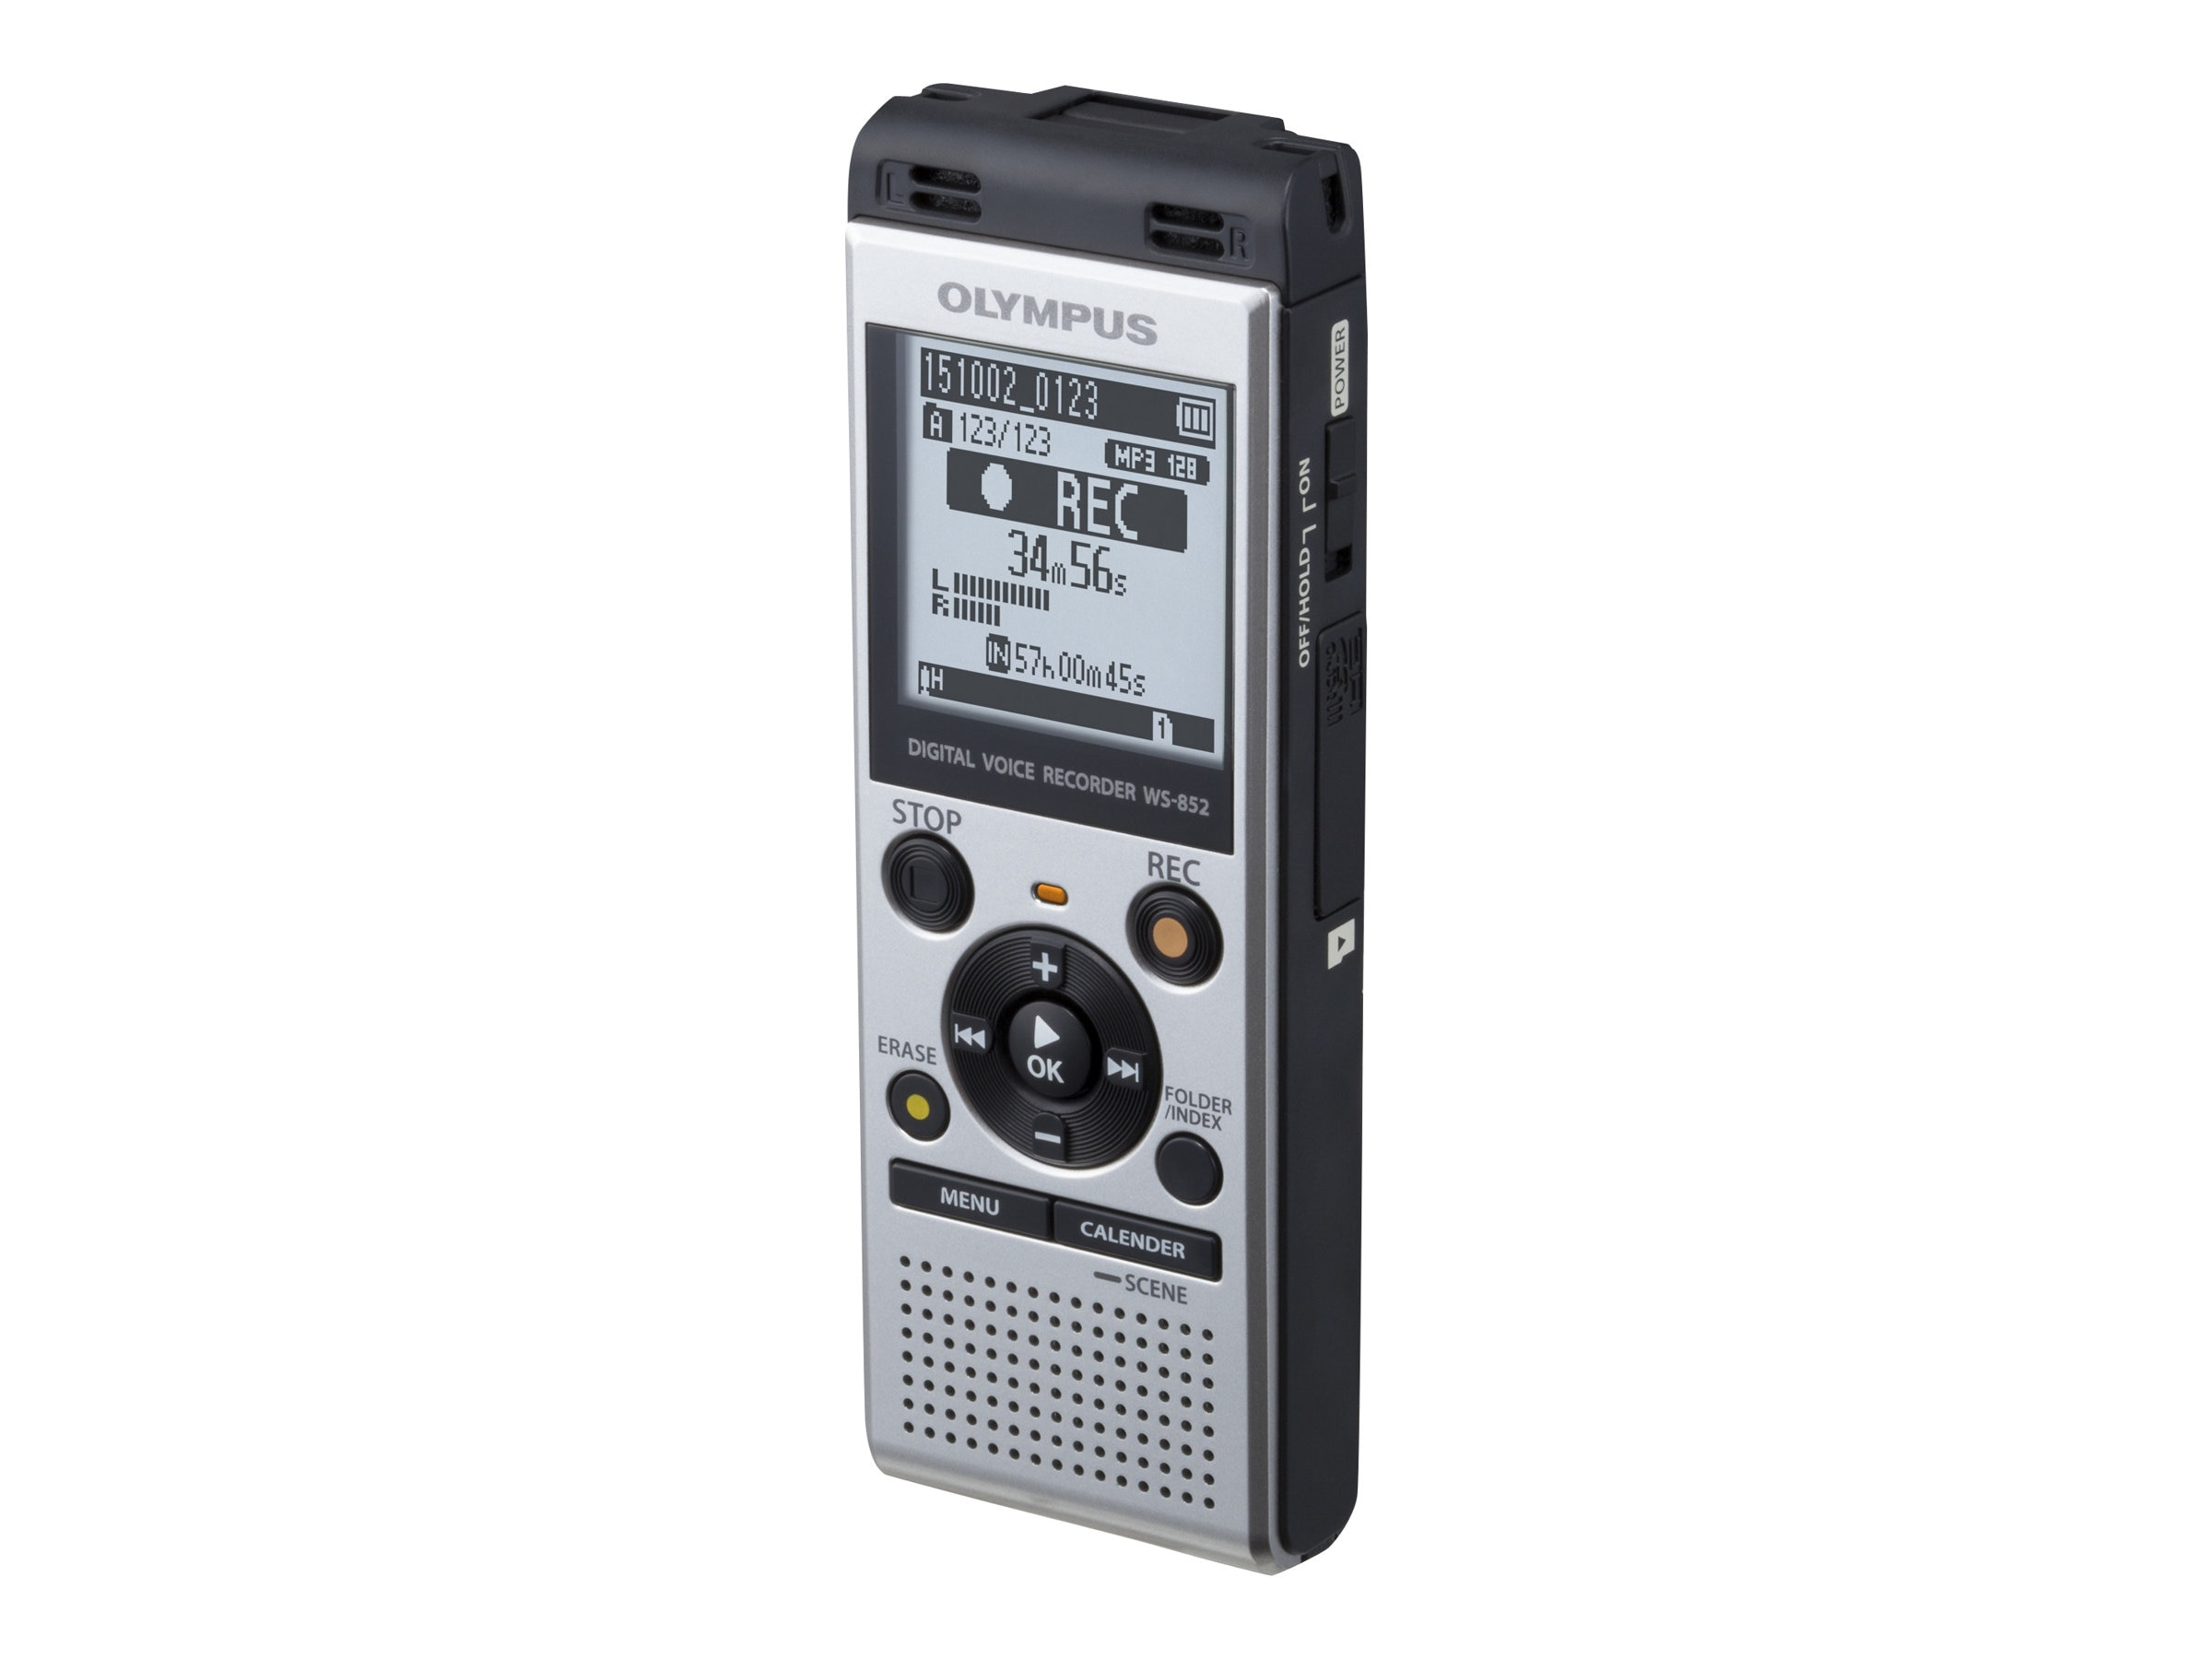 Olympus WS-852 4GB Digital Voice Recorder, V415121SU000, 31166311, Voice Recorders & Accessories